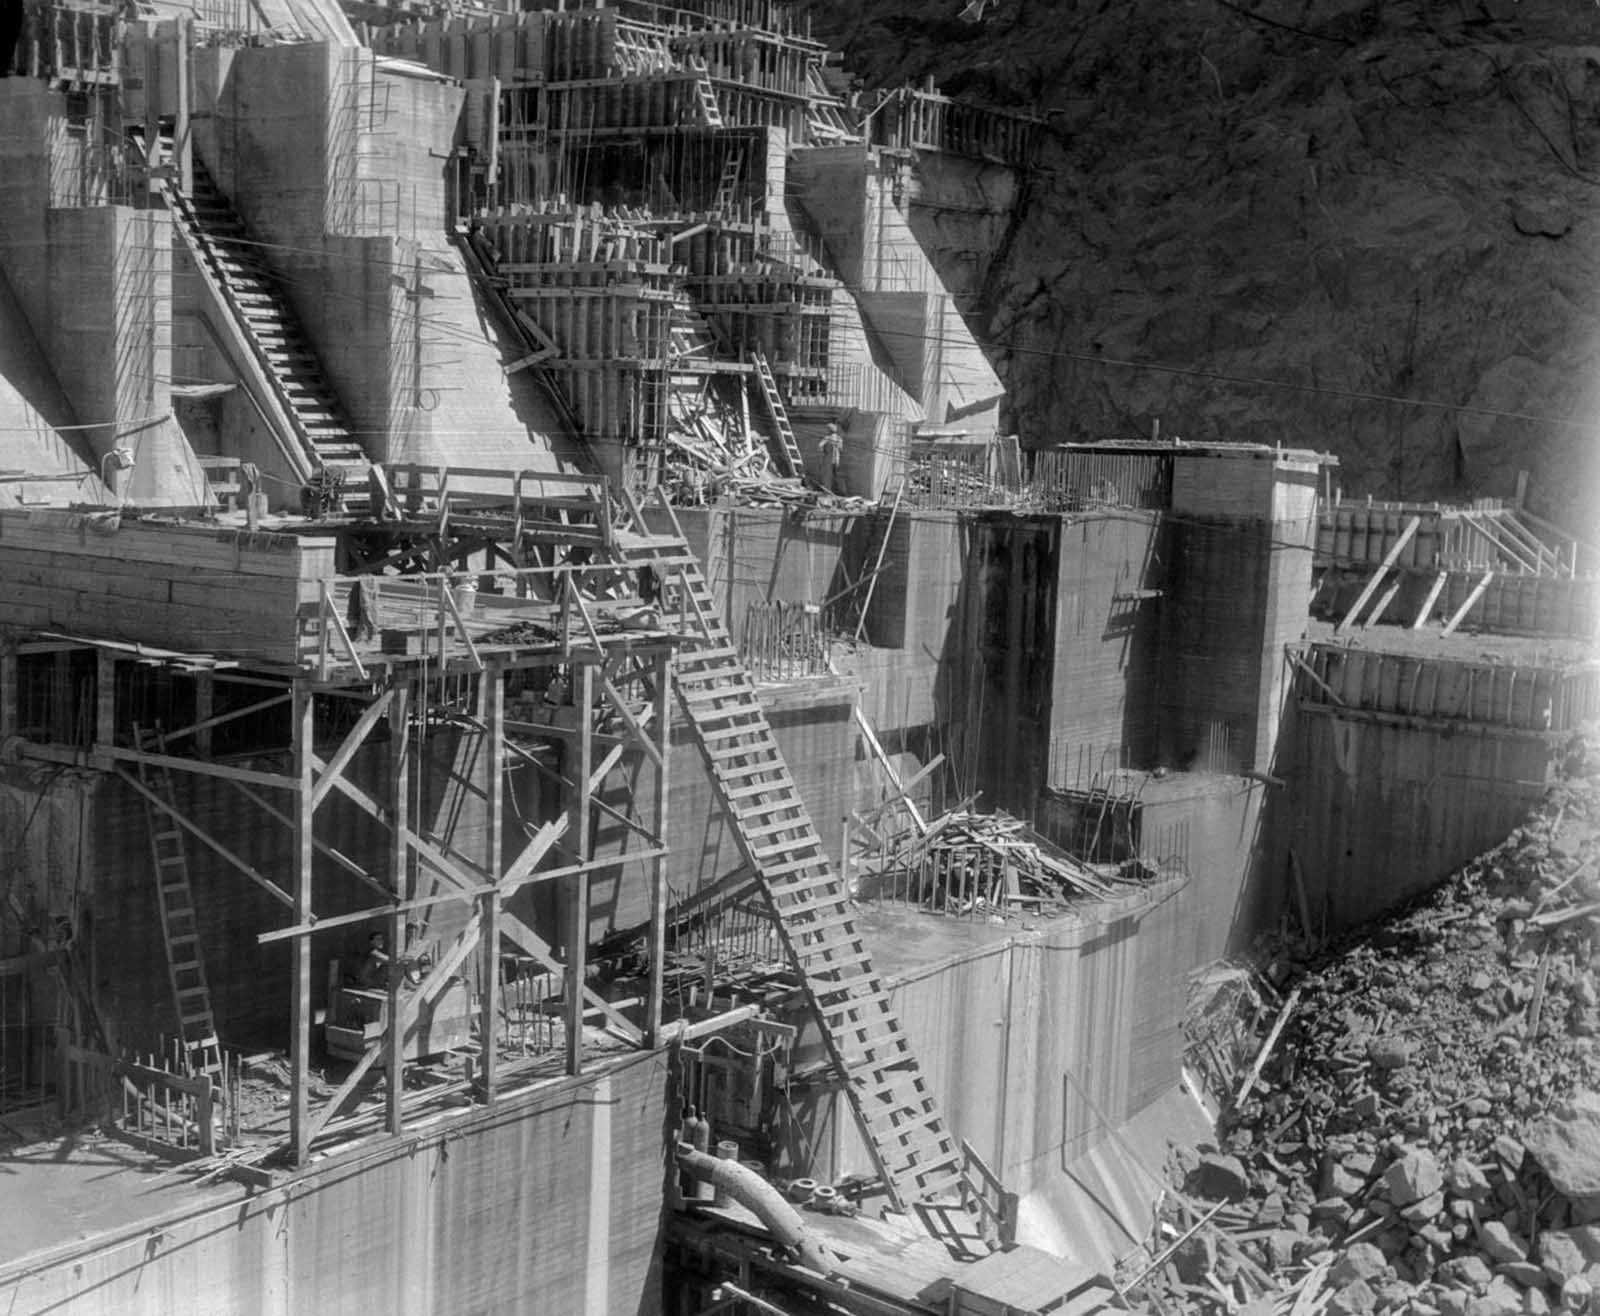 A total of 3,250,000 cubic yards (2,480,000 m3) of concrete was used in the dam before concrete pouring ceased on May 29, 1935.